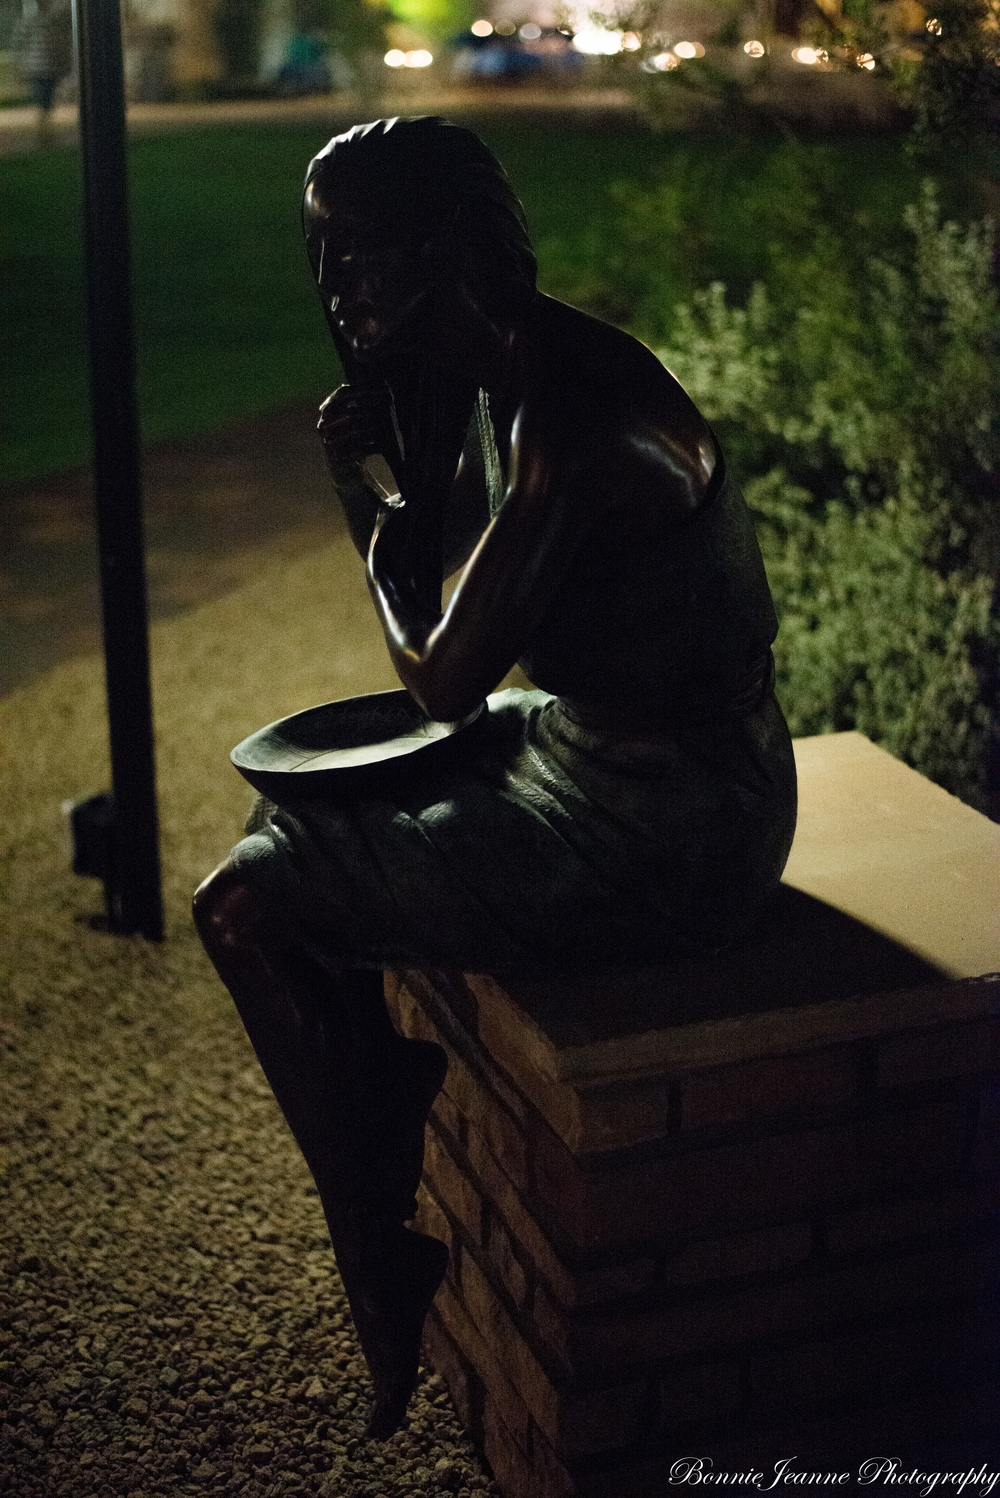 Contemplative Sculpture